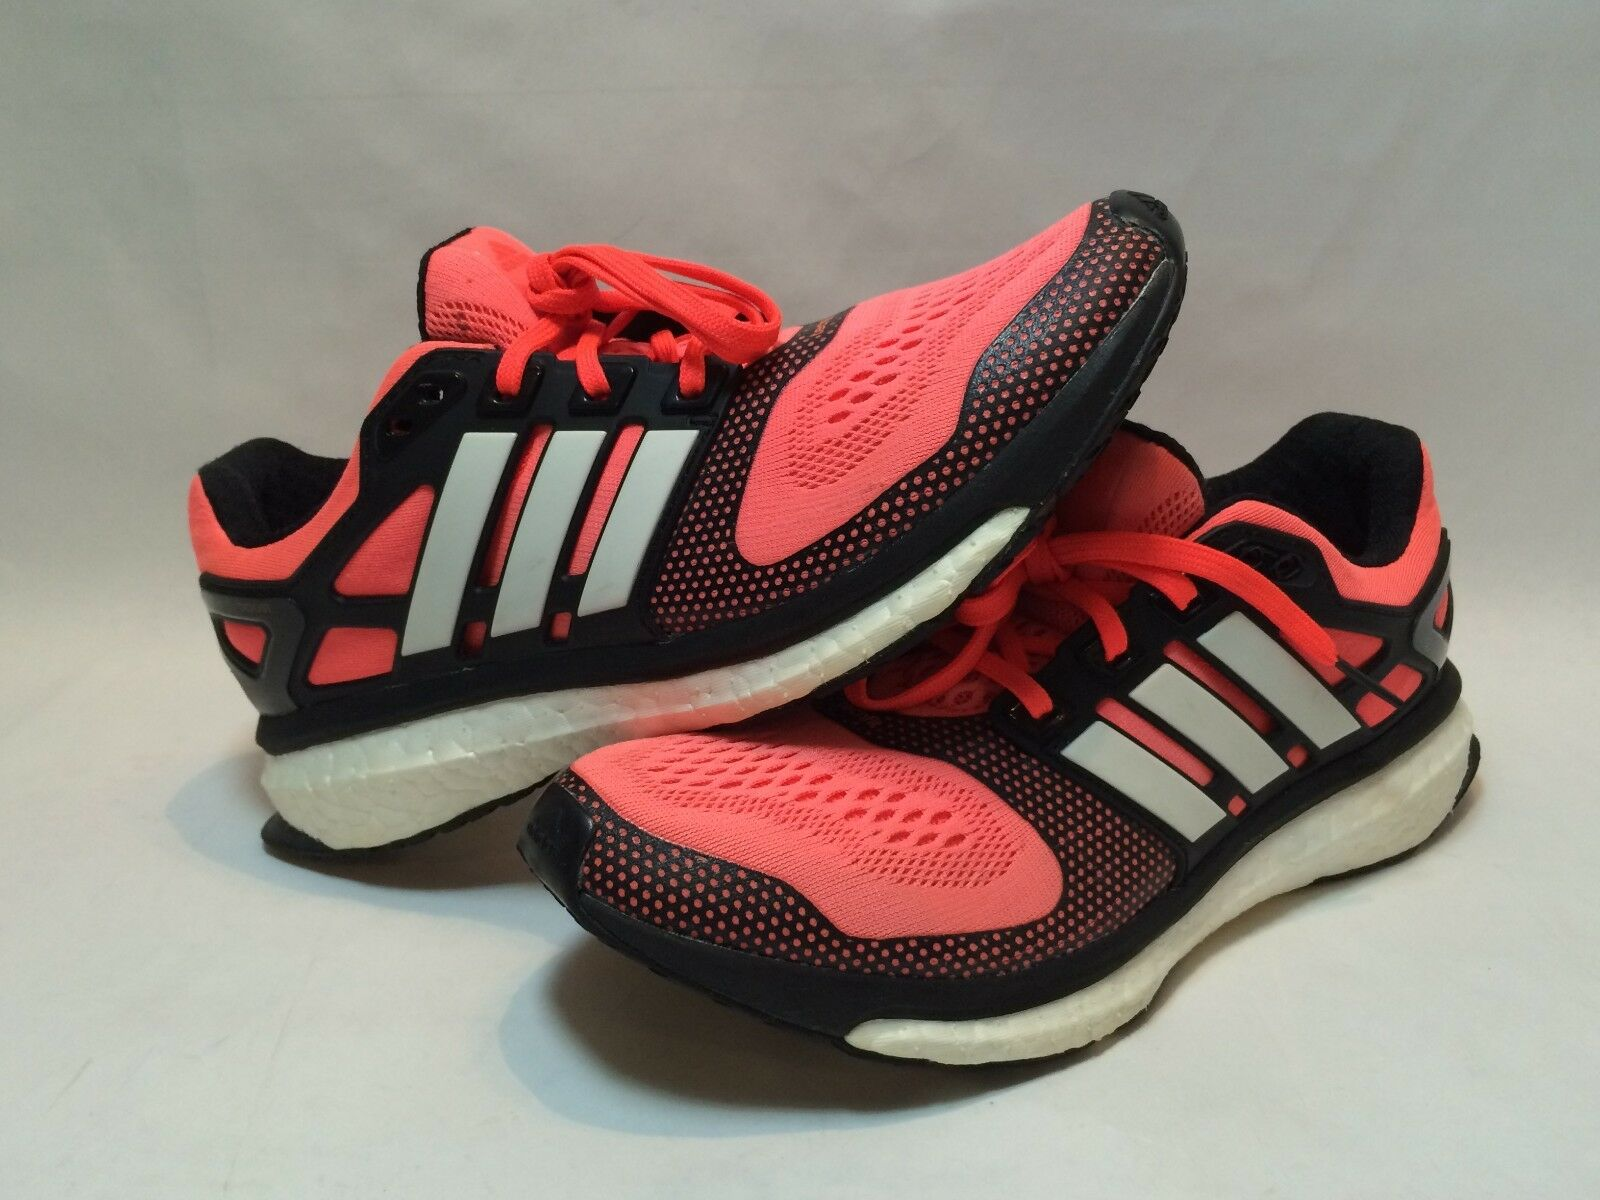 MENS ADIDAS ENERGY BOOST 2 SHOES,SLIGHTLY USED,CLEAN,SIZE 6.5 U.S